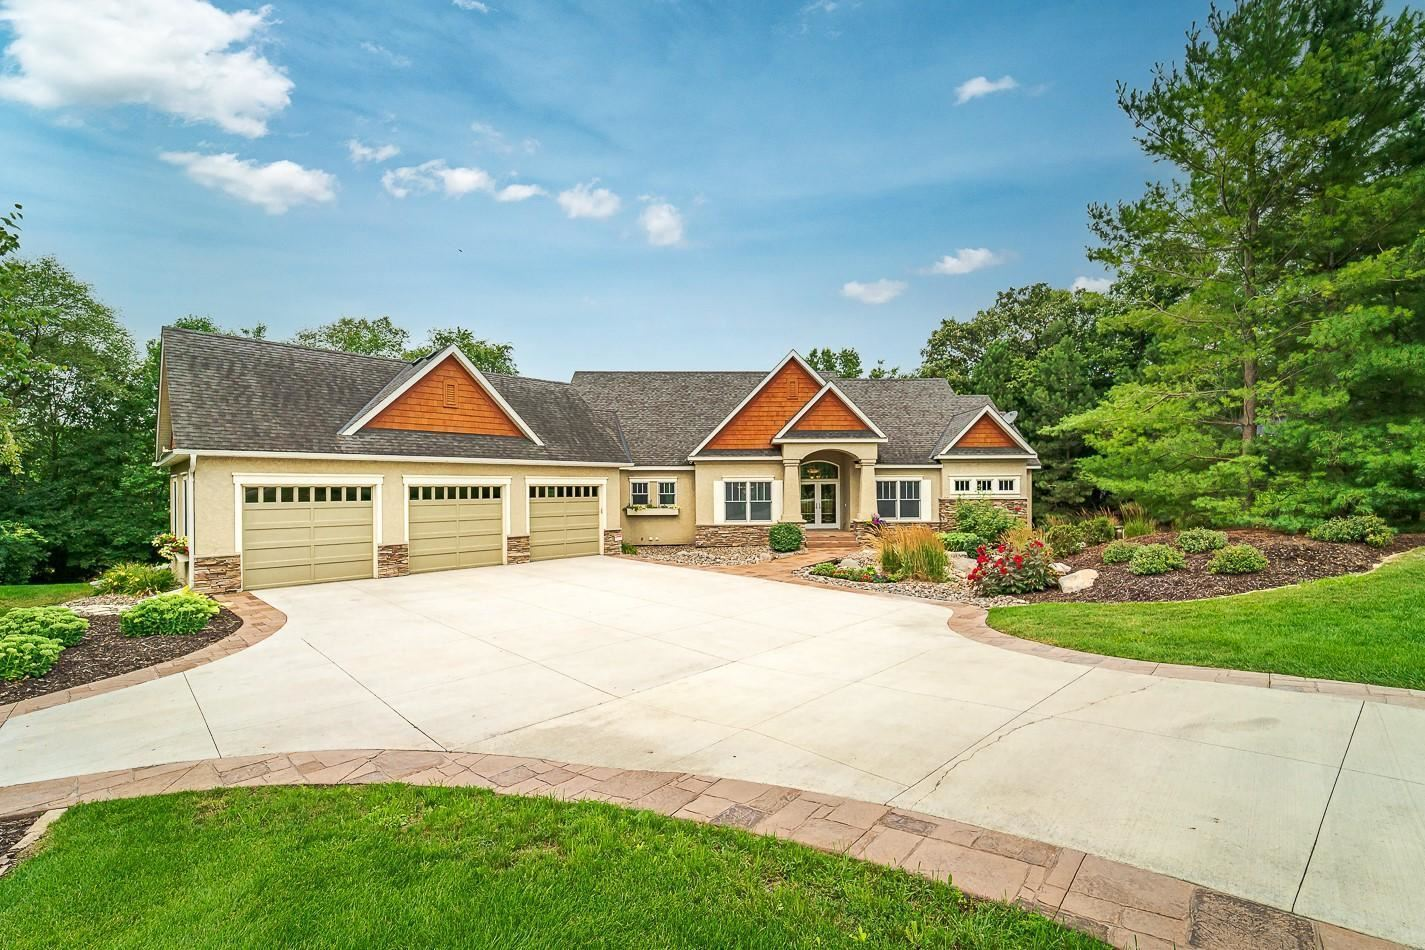 Photo of Lakeville, MN 55044 (MLS # 6046743)